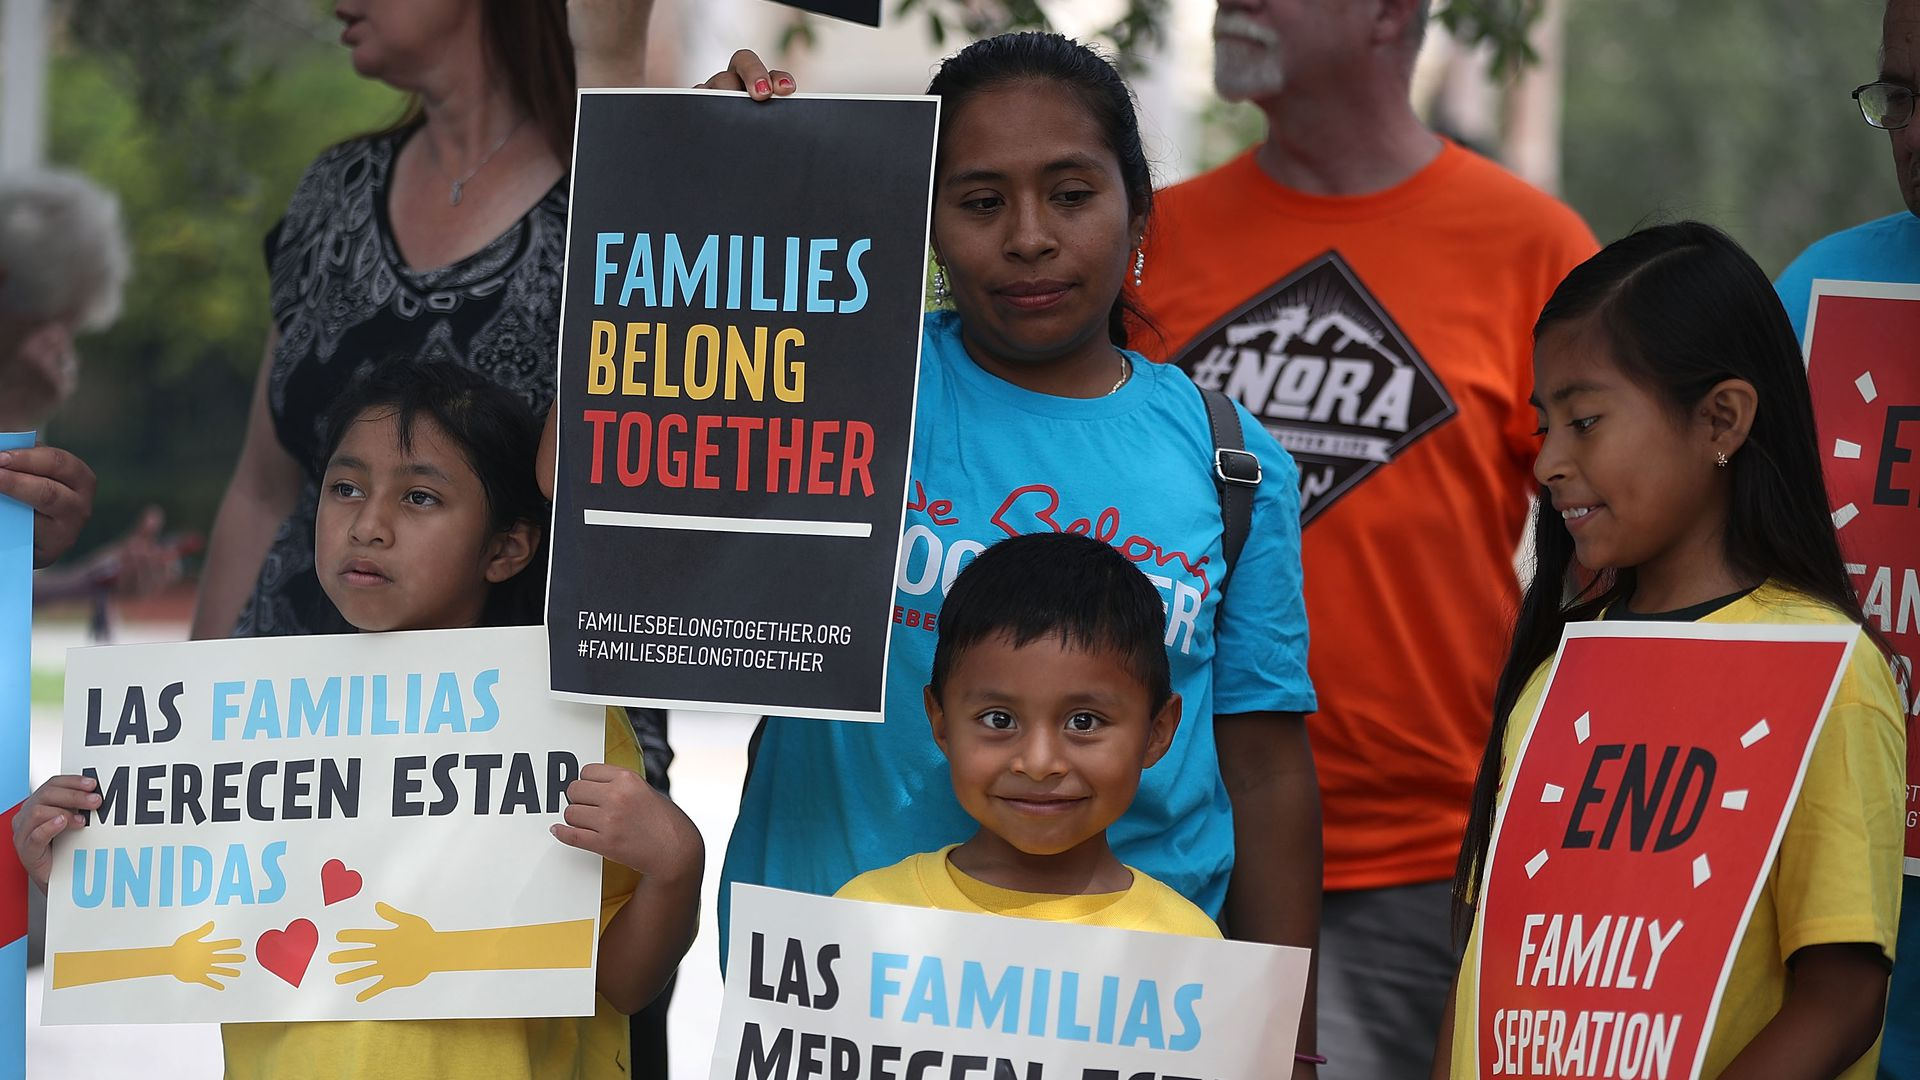 Protesters join together during a rally in front of the Miramar ICE detention facility on the National Day of Action for Children on June 1, 2018 in Miramar, Florida.